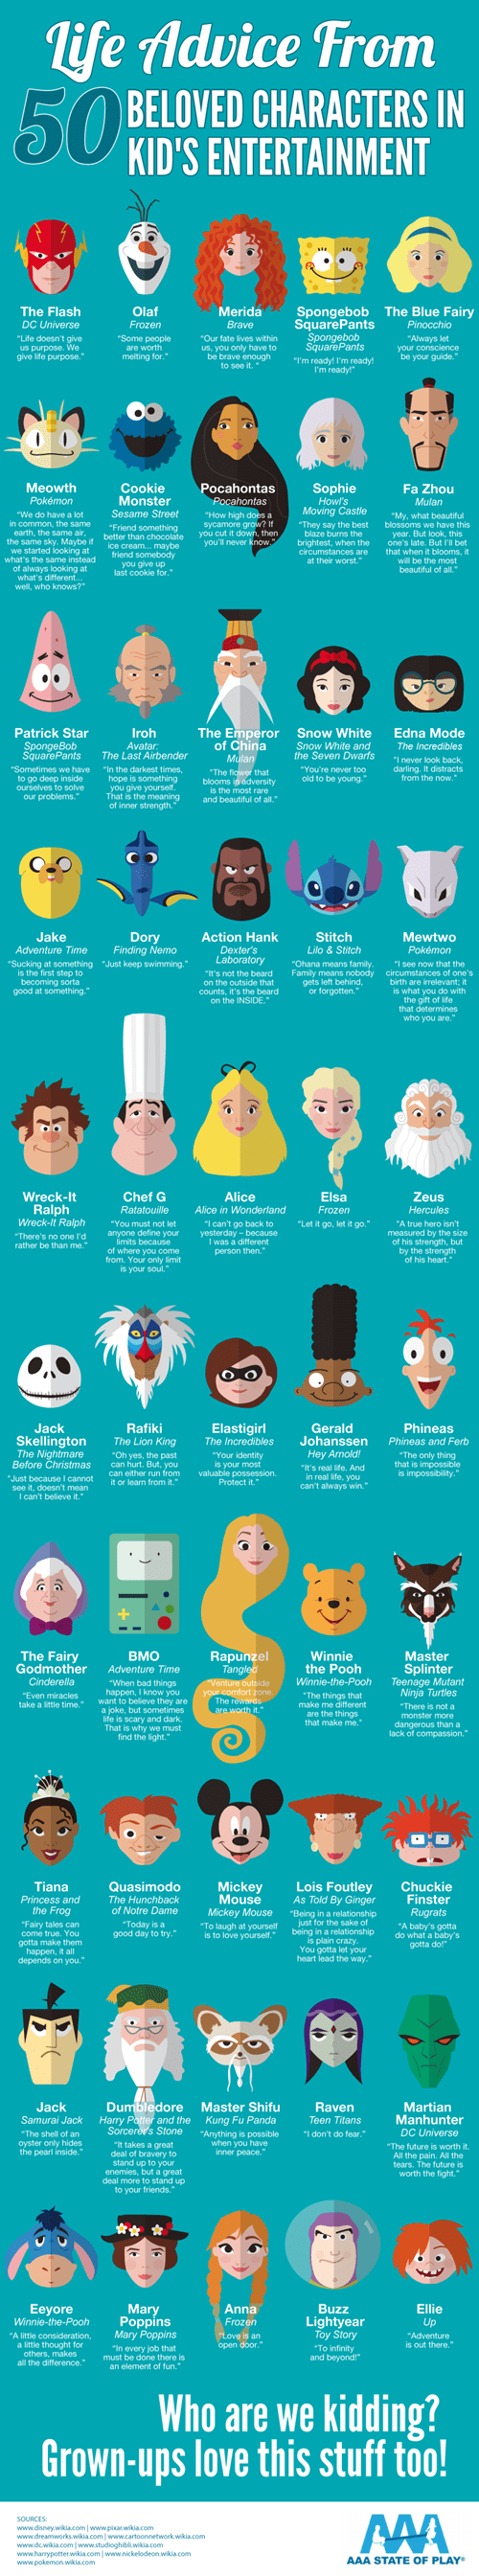 Need Advice? Get Some Inspiration From 50 Children's Characters